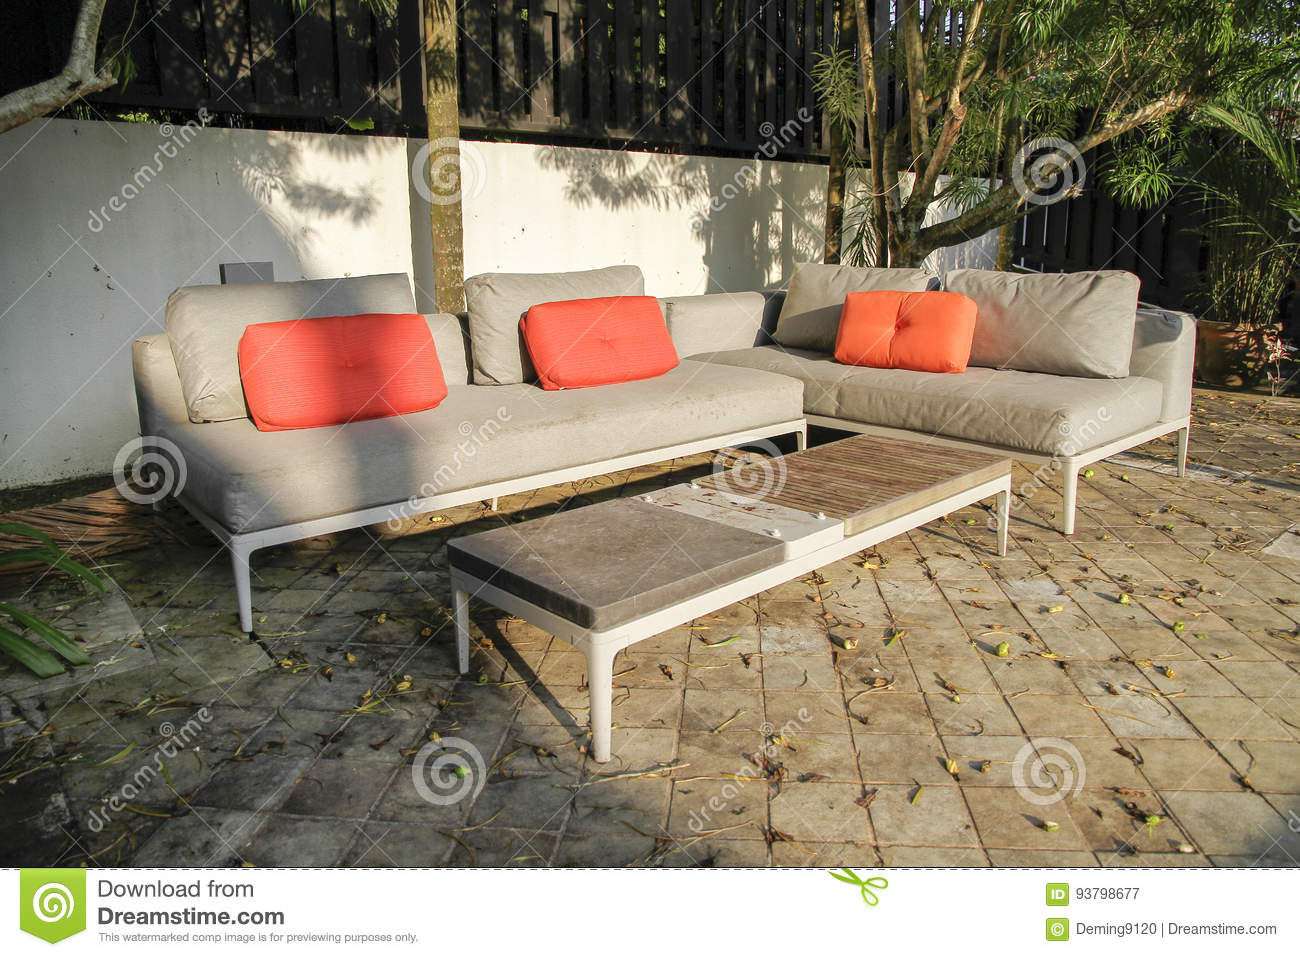 outdoor furniture stock image image of woof product 93798677